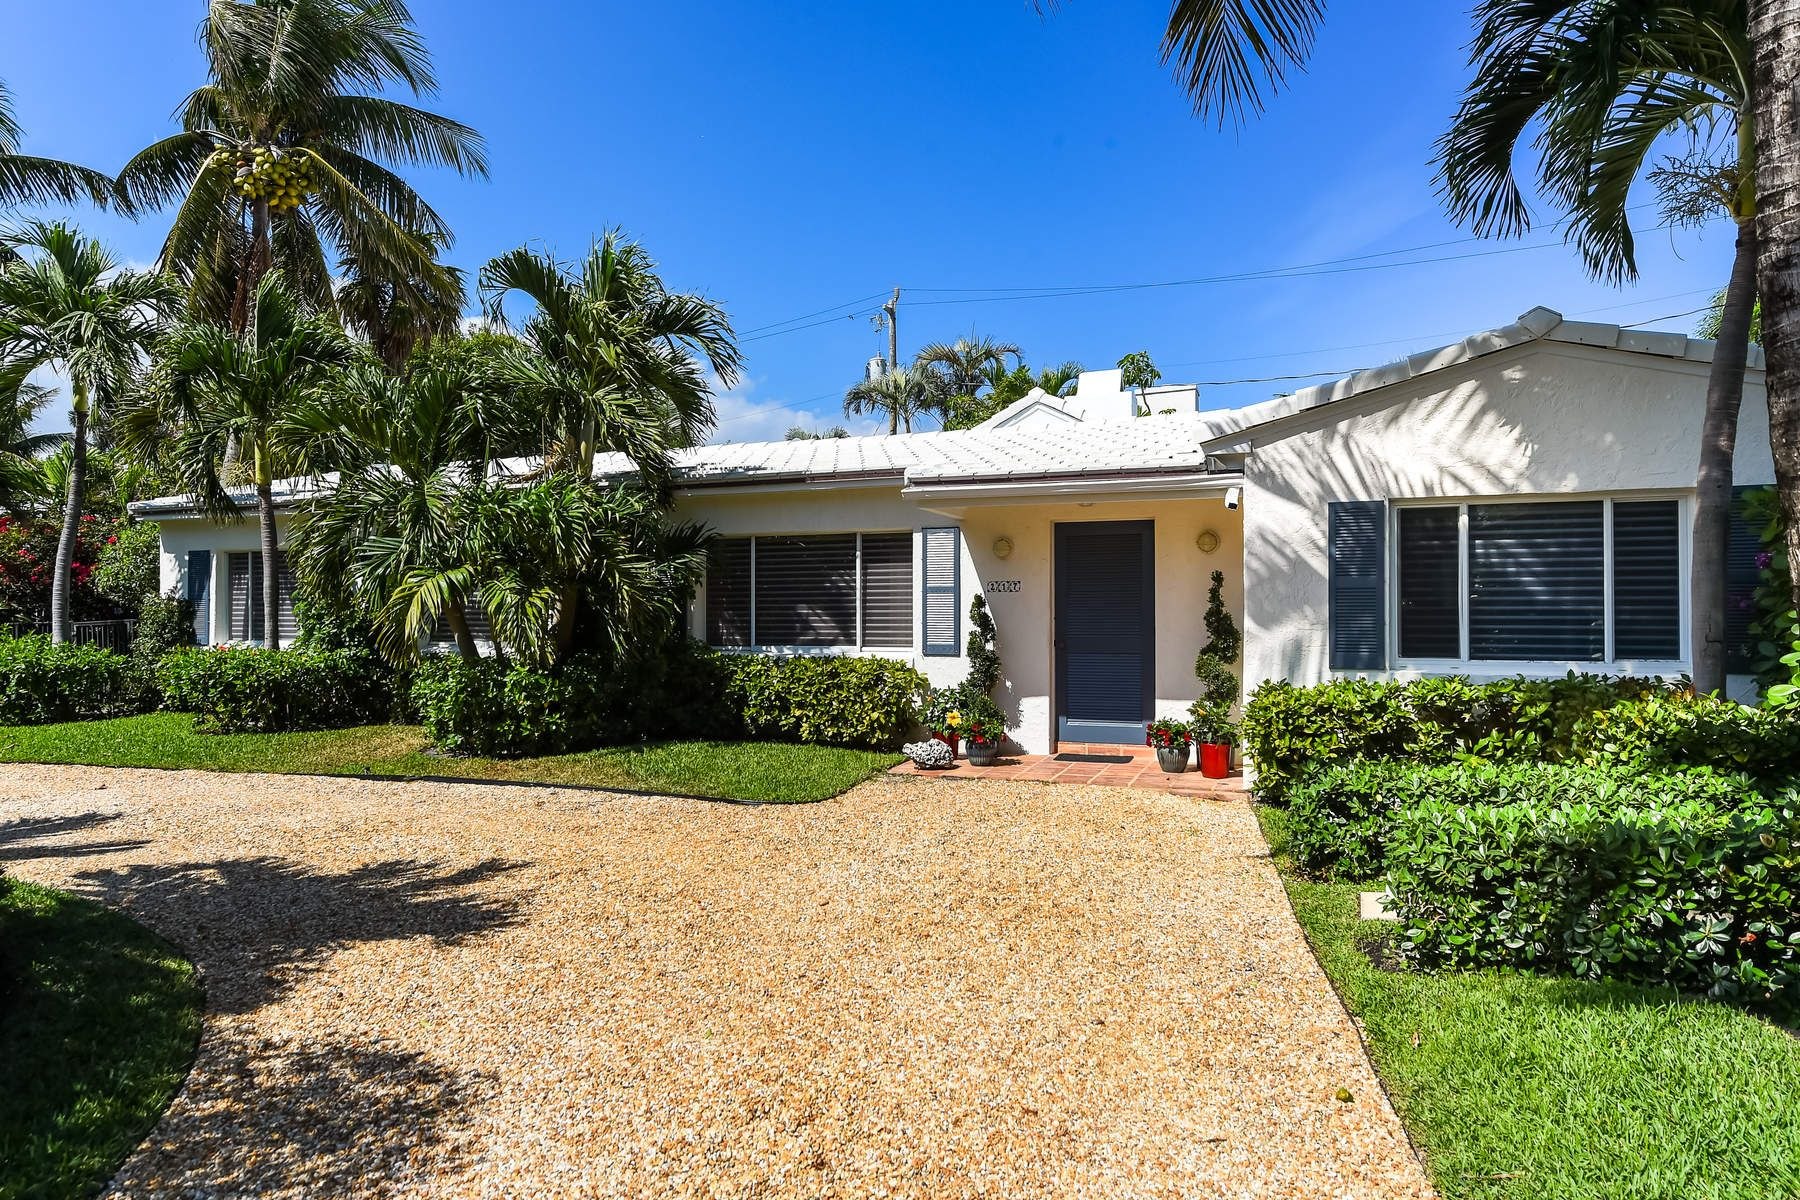 Single Family Home for Sale at North End Beach House 217 Debra Ln Palm Beach, Florida 33480 United States